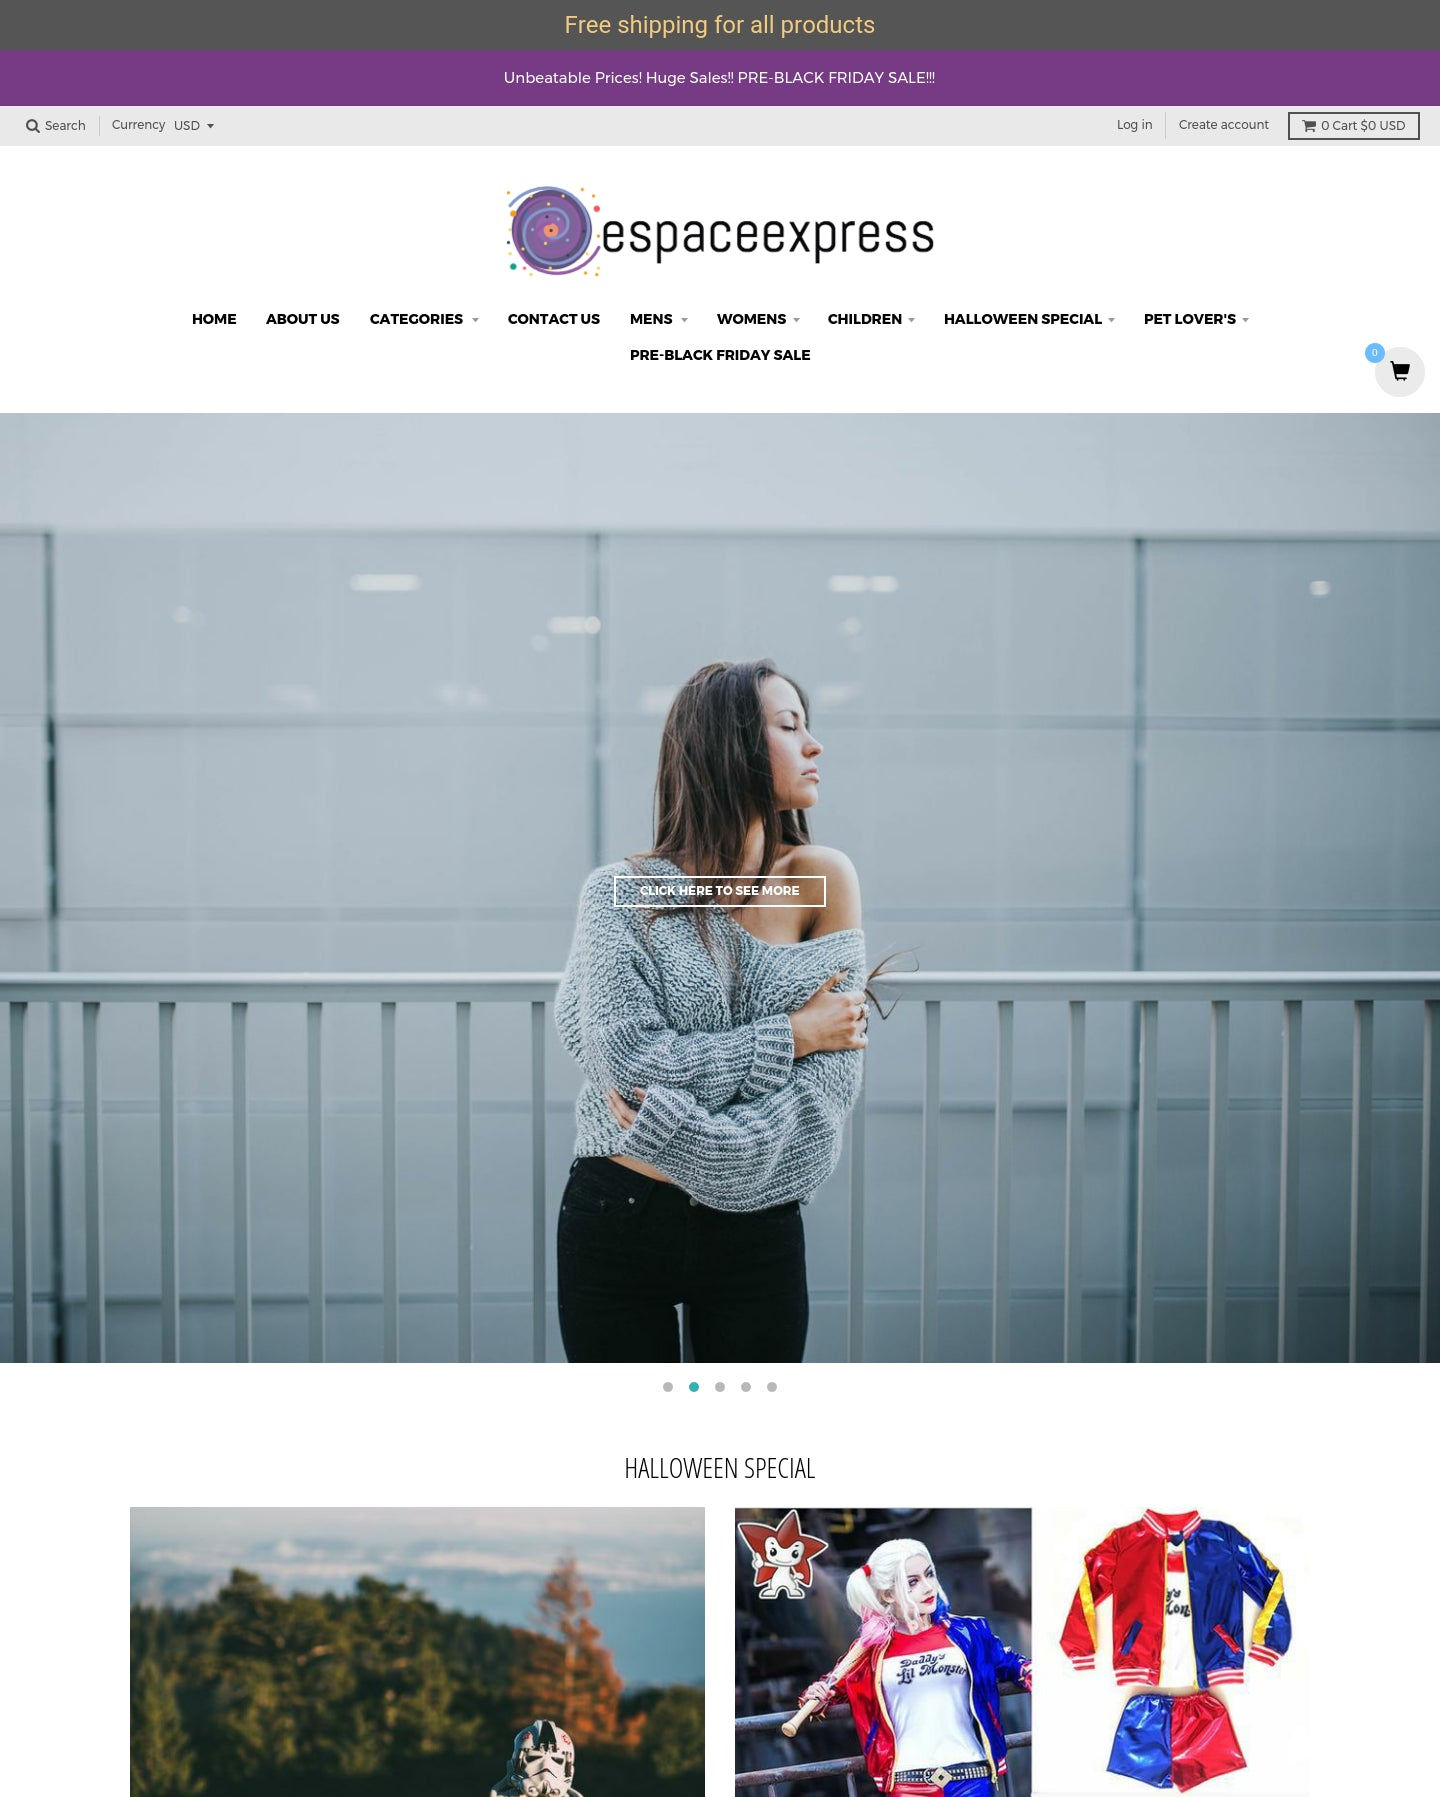 espaceexpress Screenshot - 1